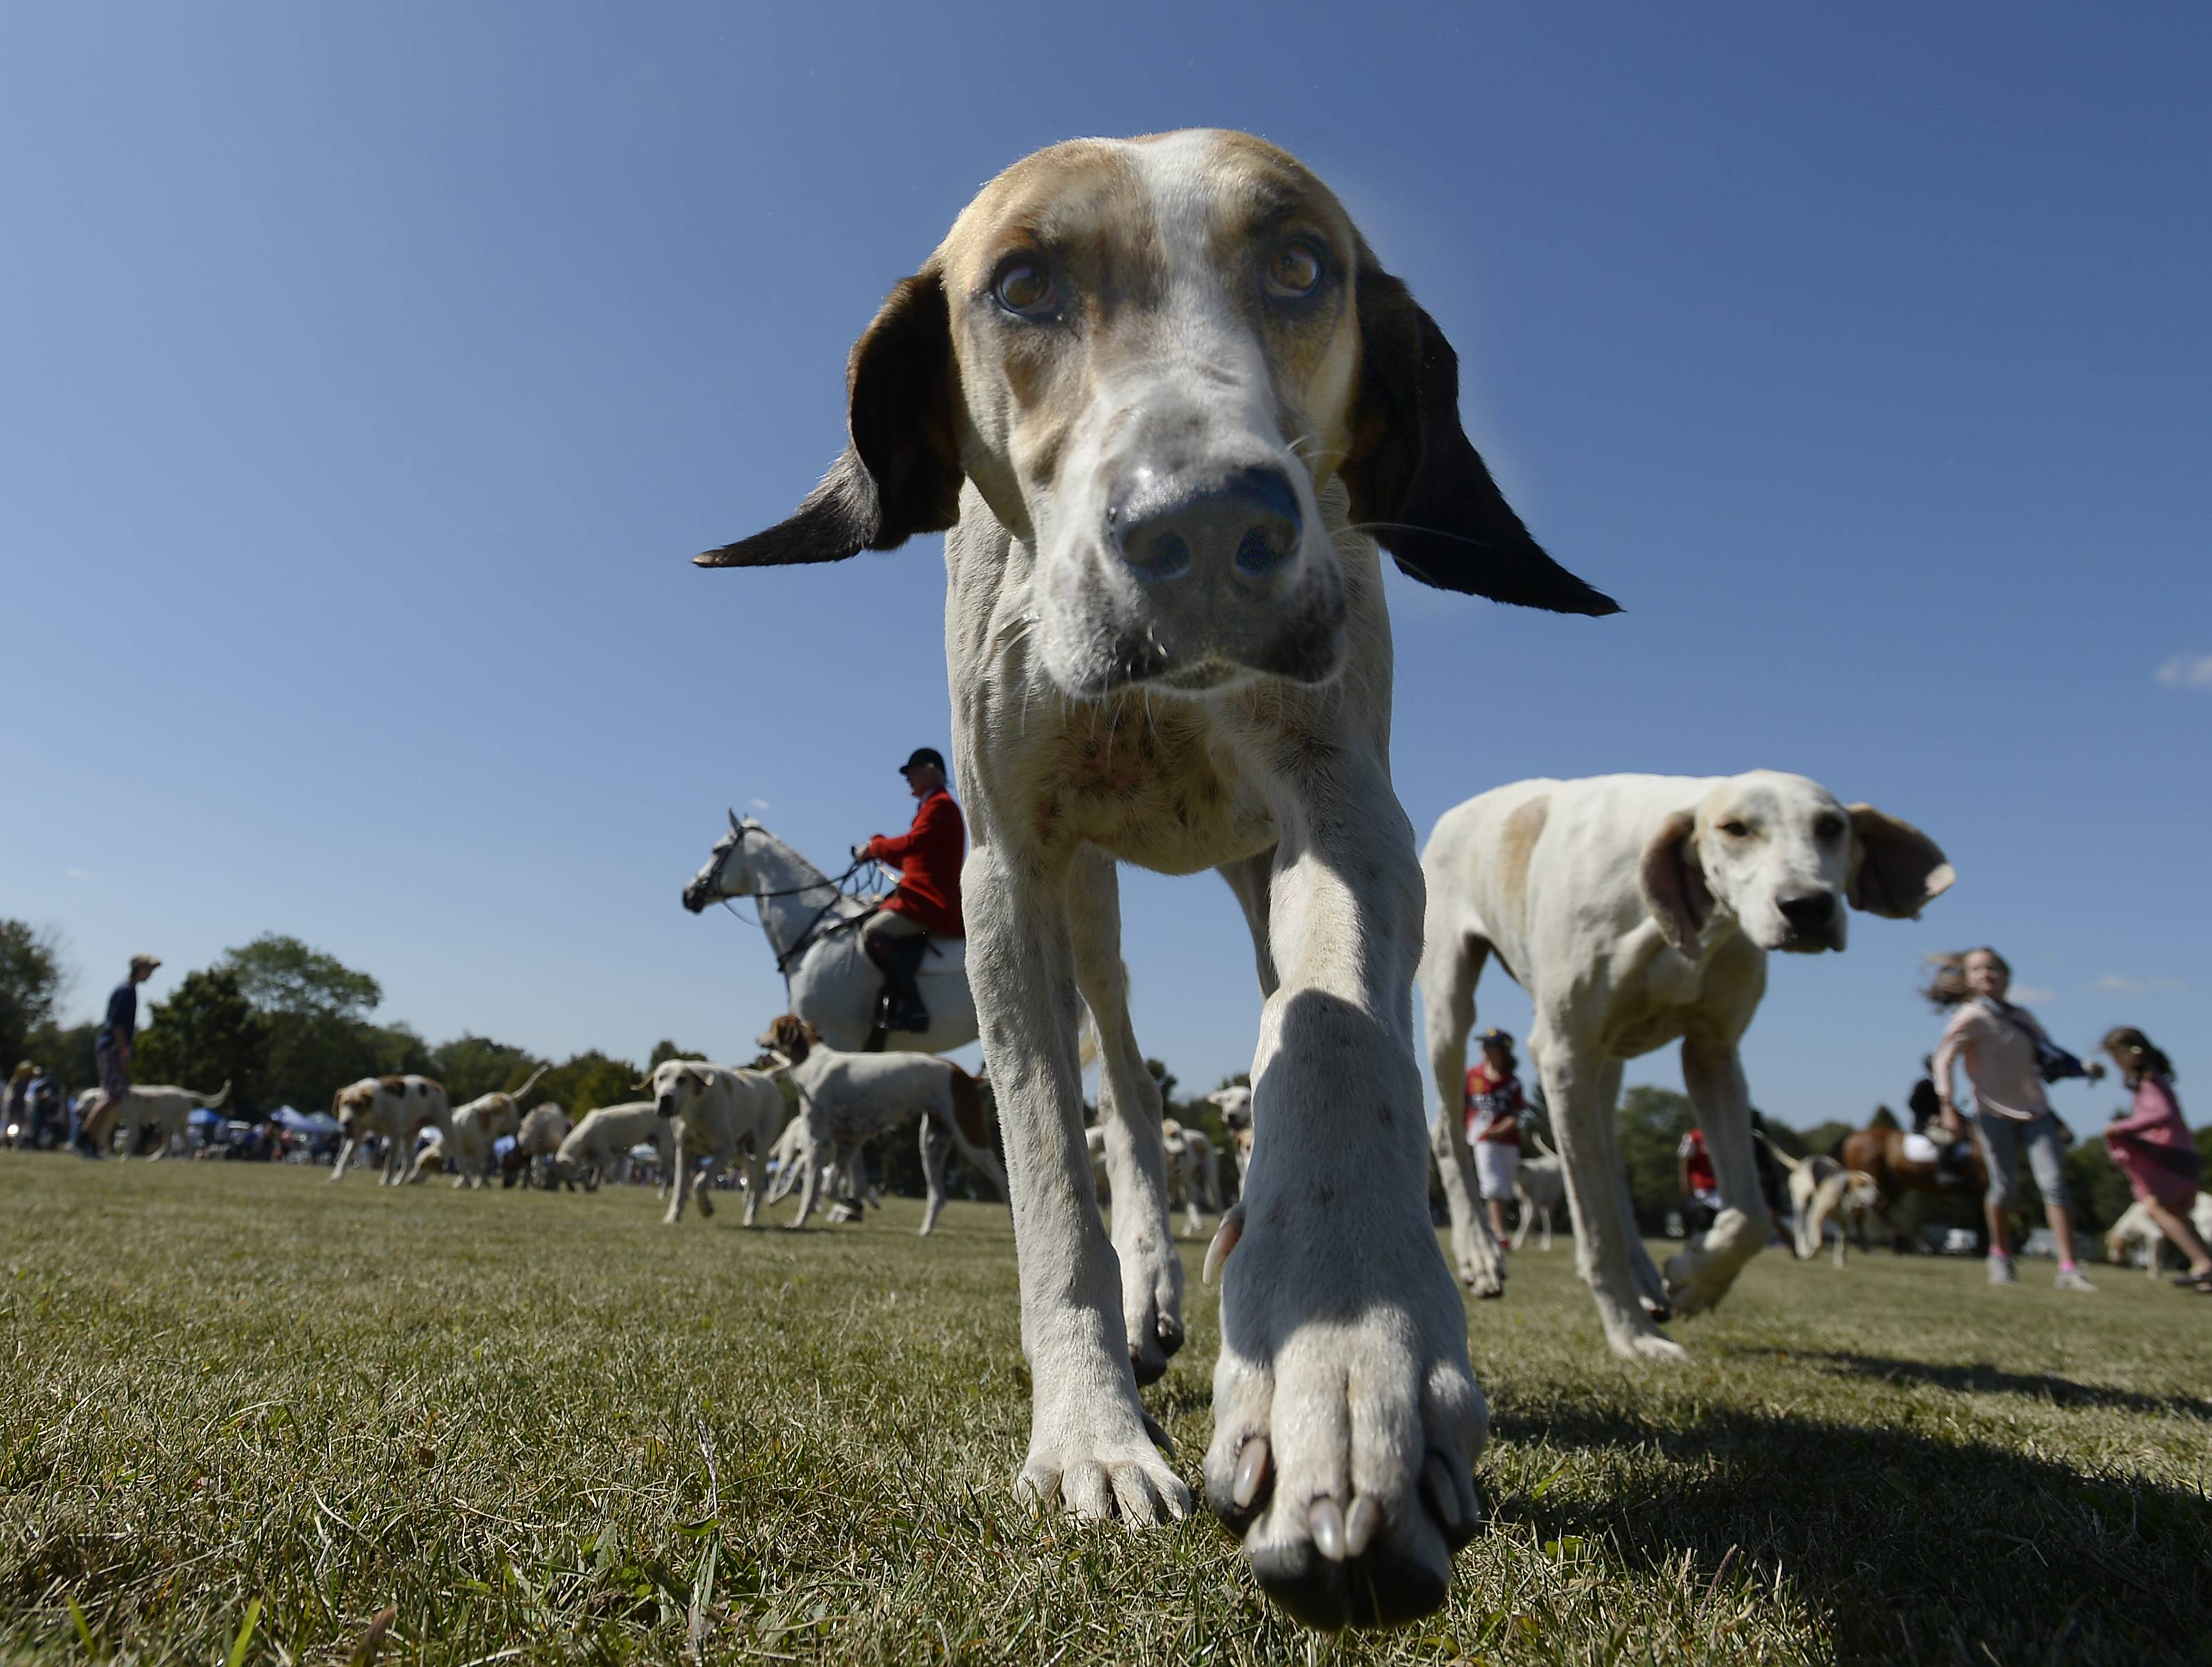 Mark Welsh/mwelsh@dailyherald.com Dogs followed their noses at the Running of the Hounds event at the 13th annual LeCompte/Kalaway Trailowners Cup Polo in Barrington Hills.